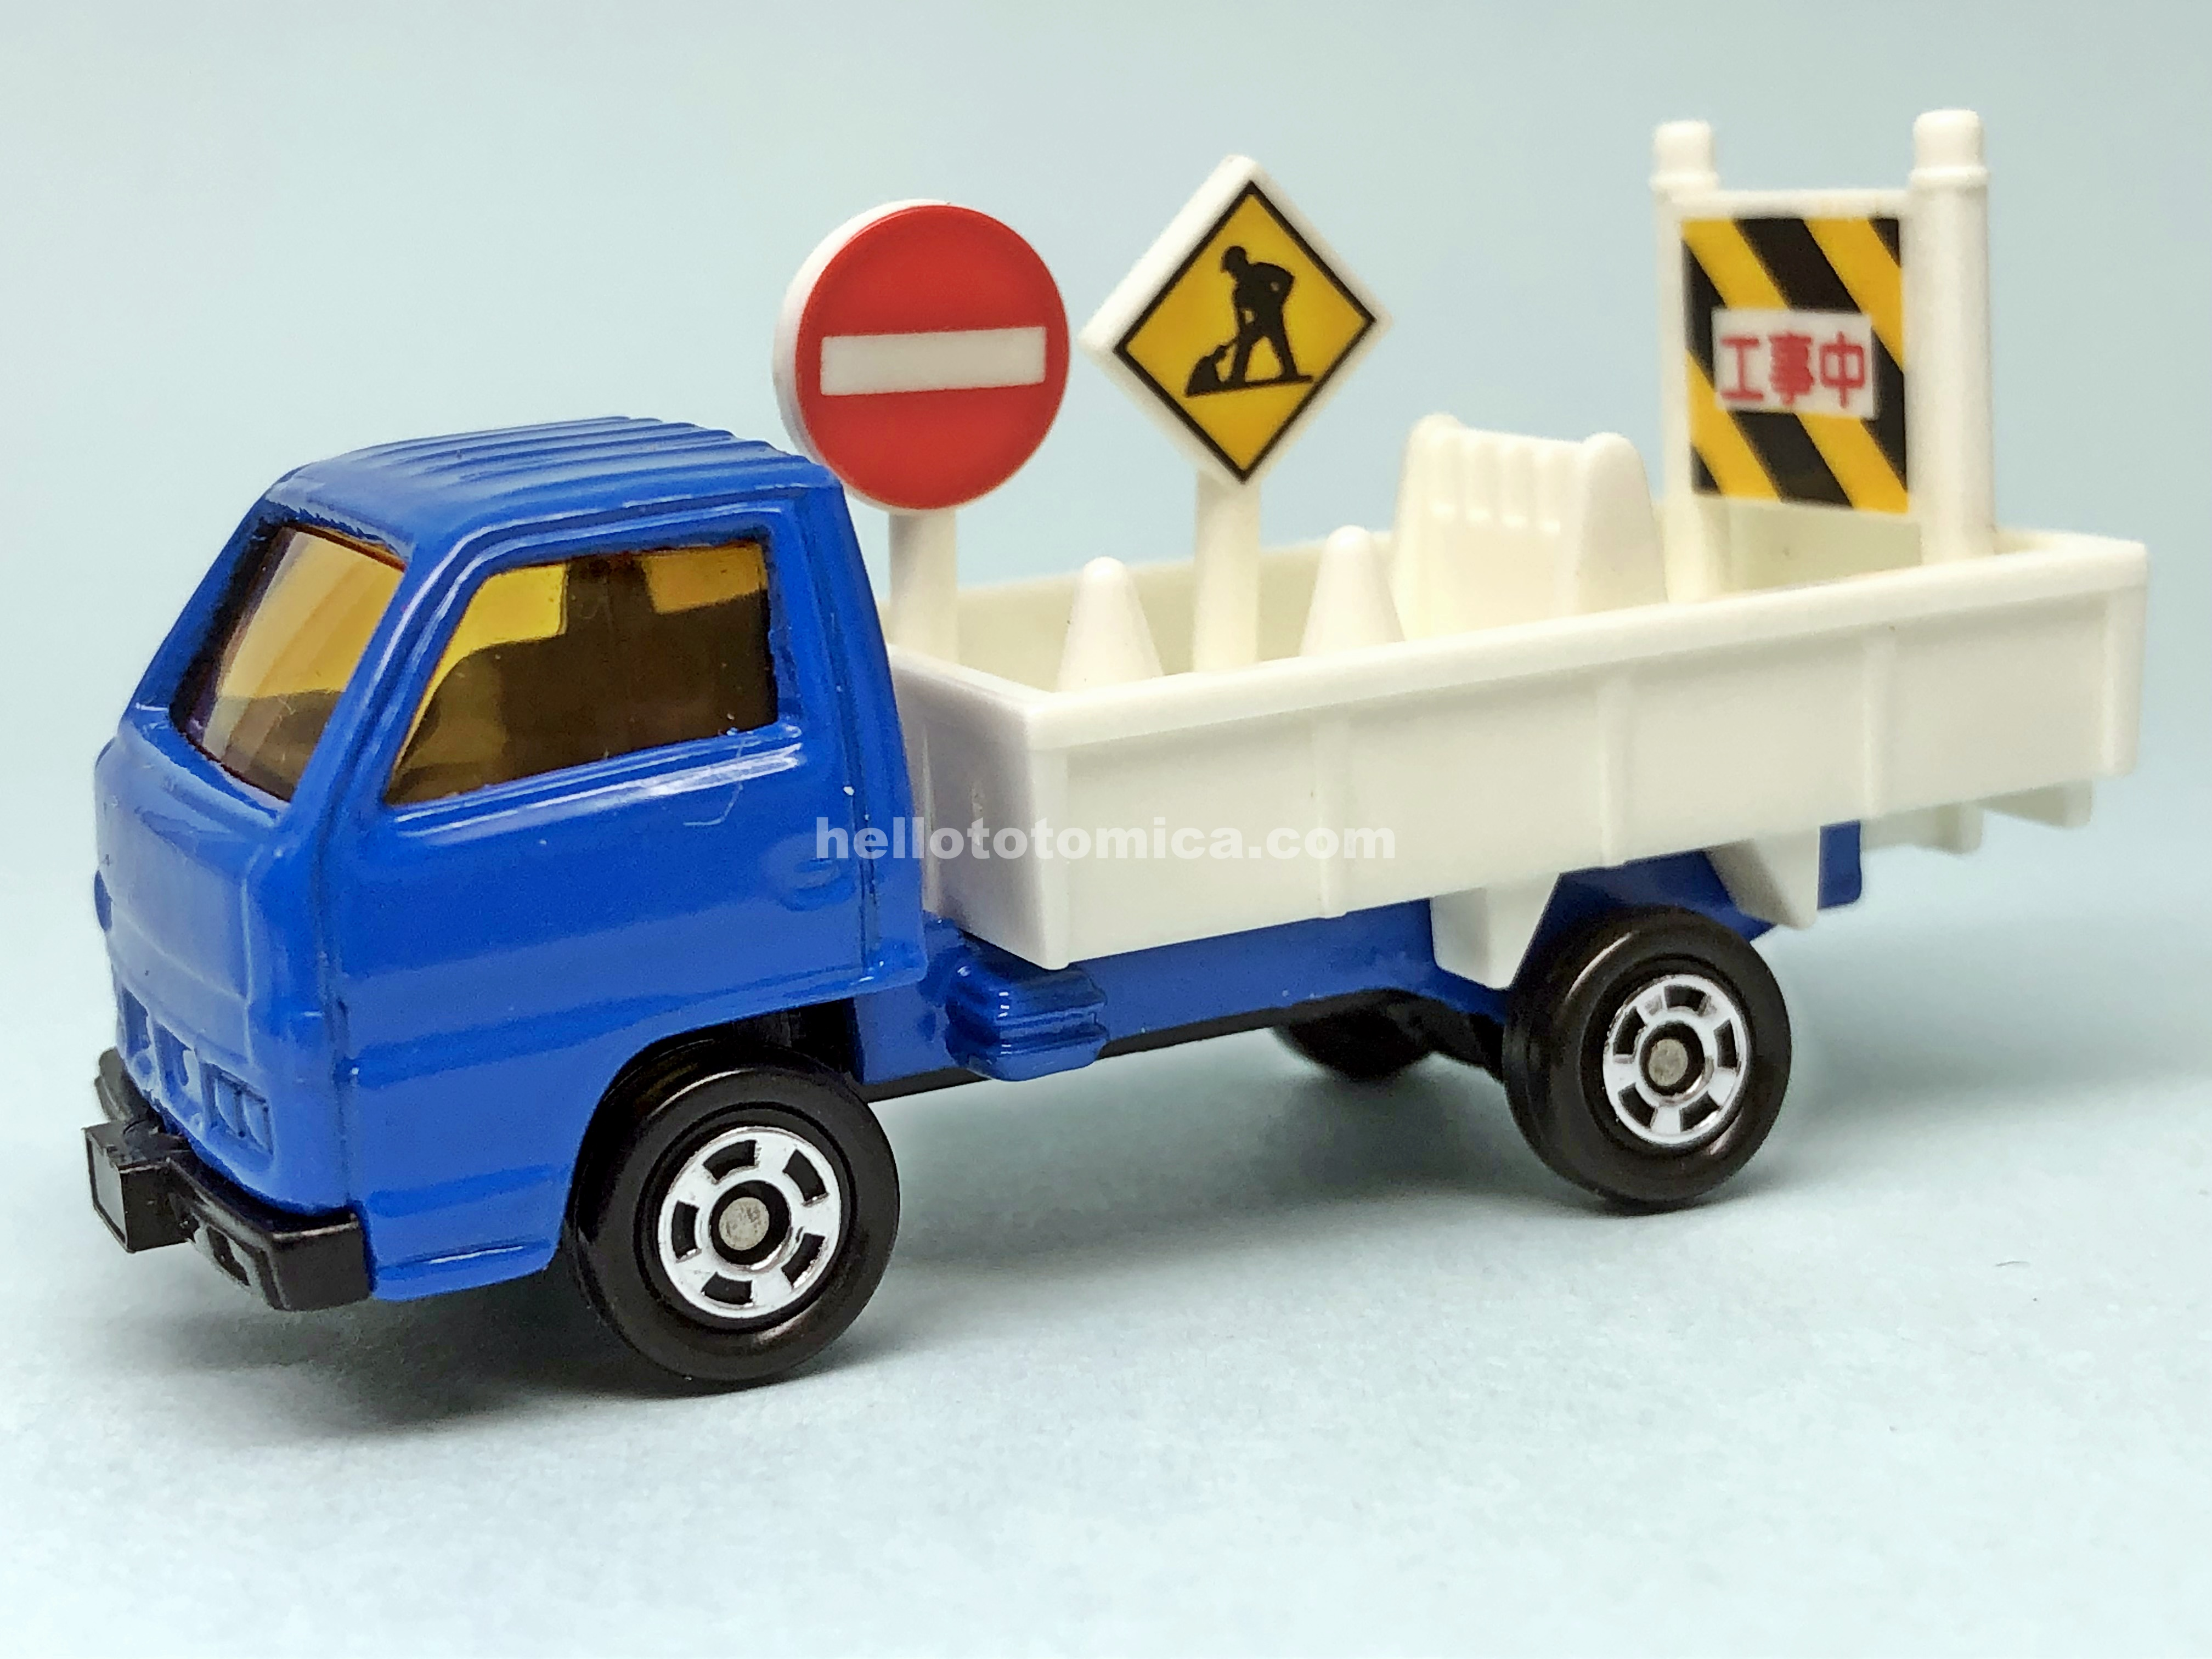 85-2 ROAD CONSTRUCTION TRUCK